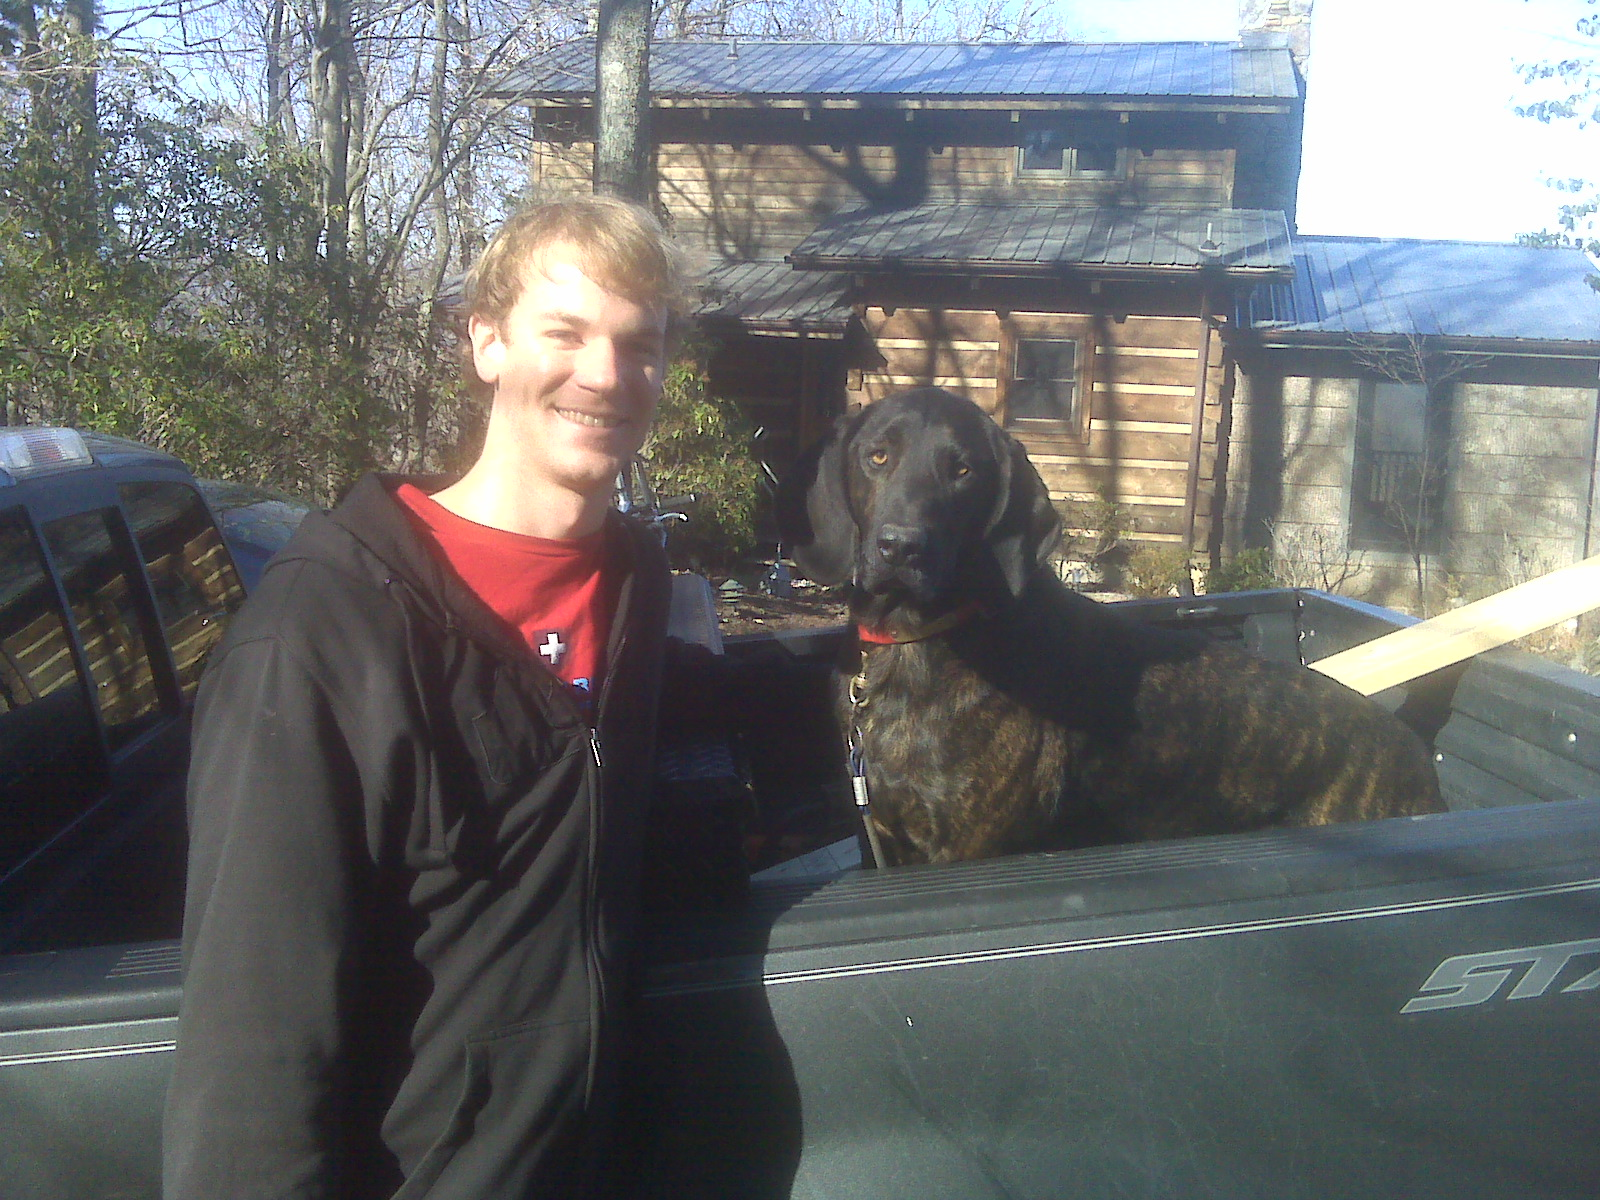 Ted Edmunds with his dog, Wylie.  Wylie is a Plott Hound, the official state dog of North Carolina.